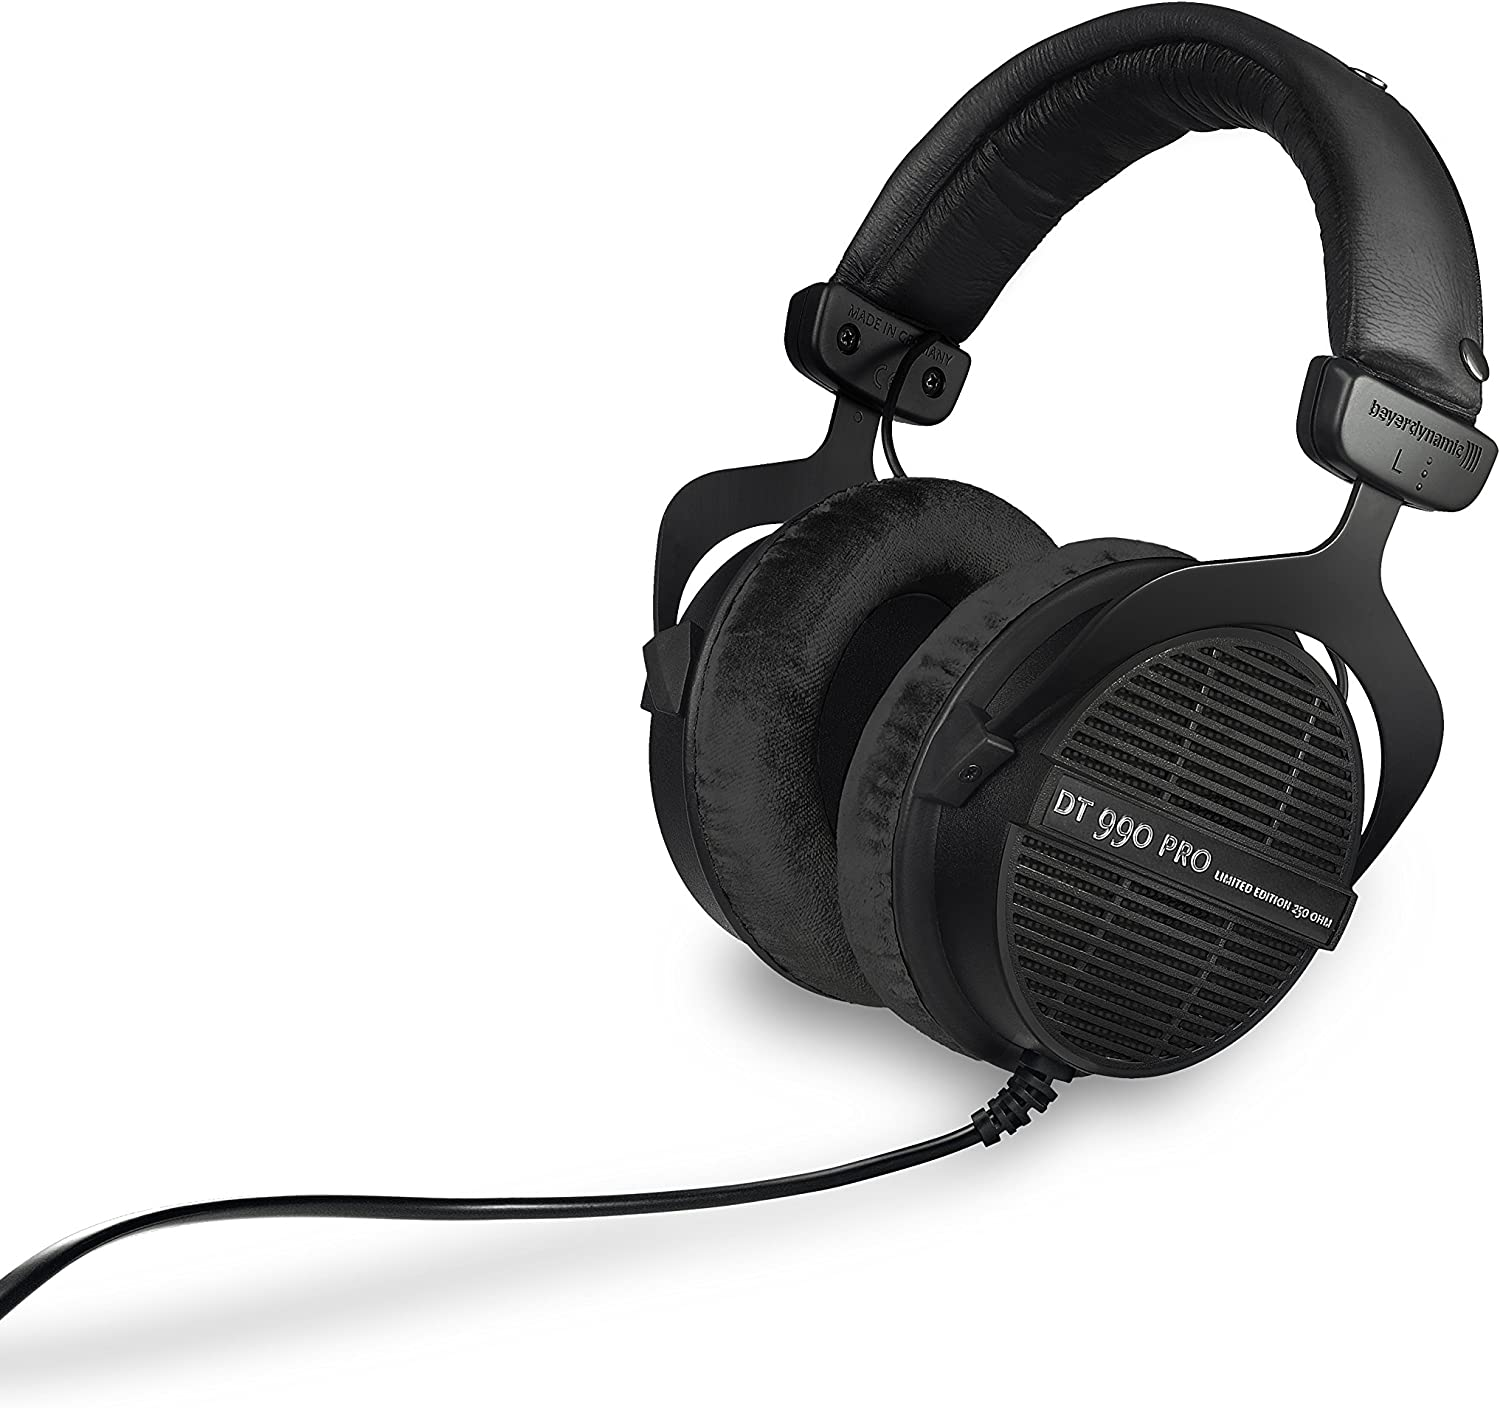 beyerdynamic DT 990 PRO 250 ohm - LIMITED EDITION (Black, Straight Cable)